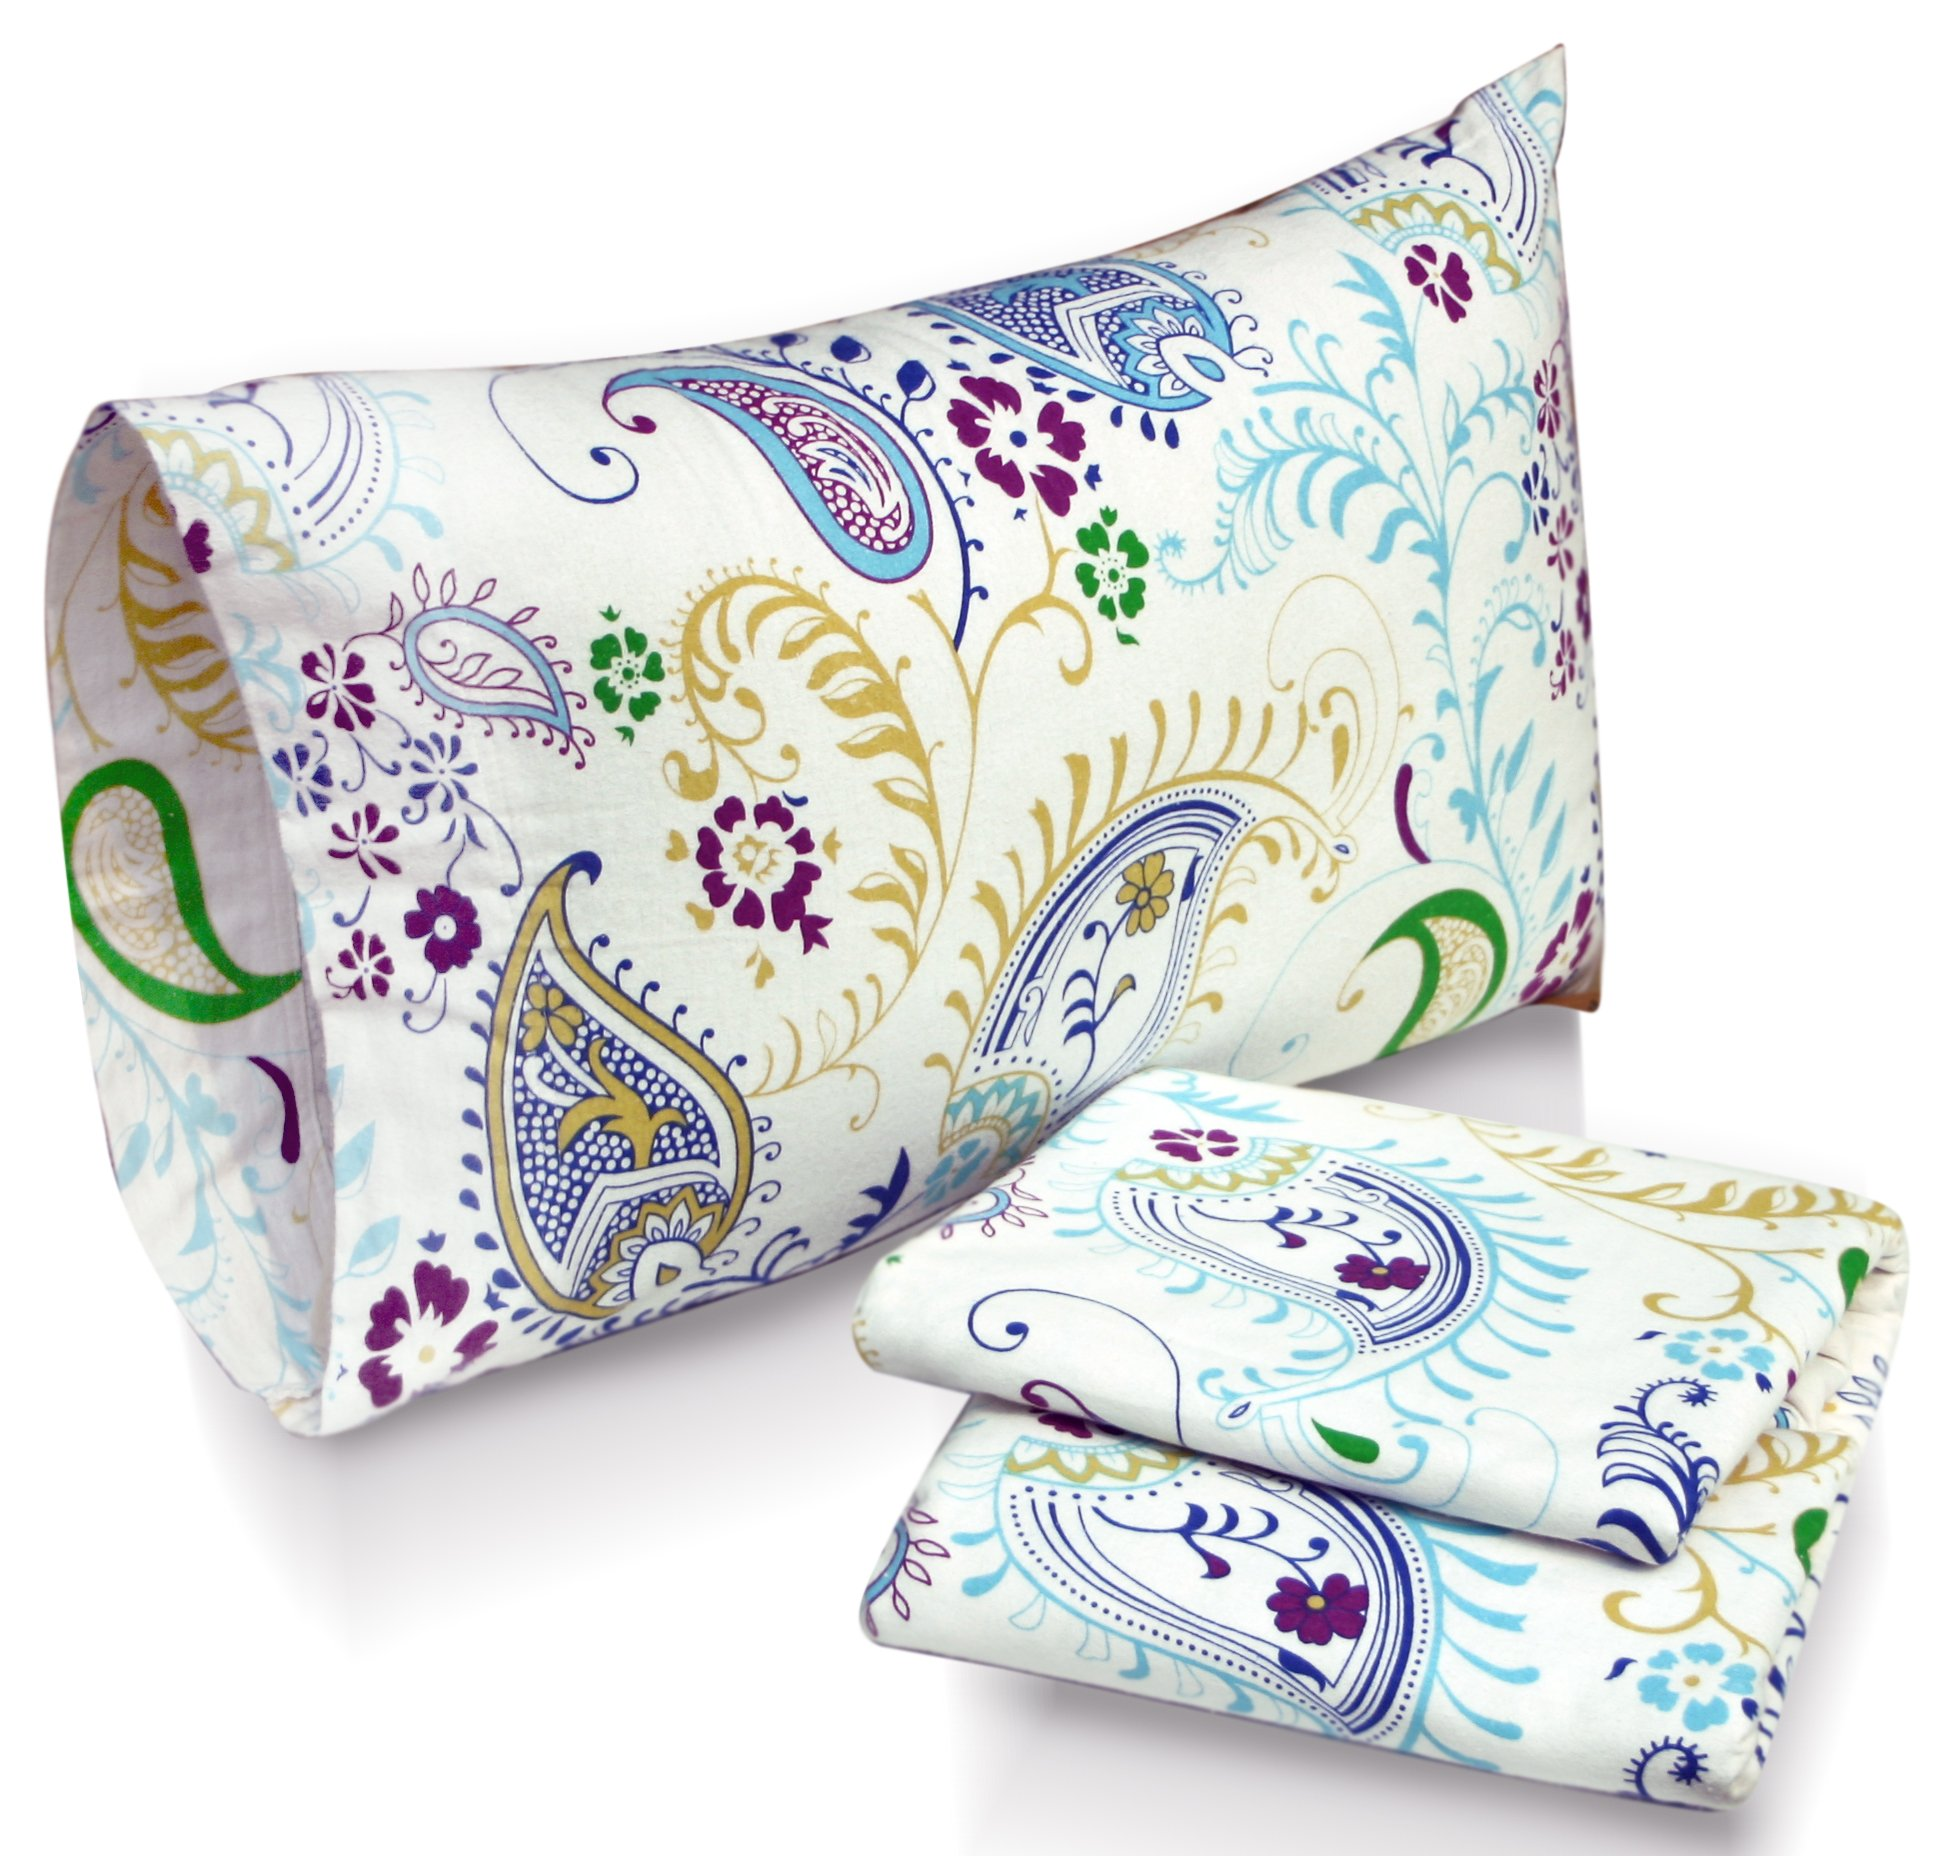 Tribeca Living Paisley Garden Printed Deep Pocket Flannel Sheet Set with Pillowcase, King - This extra deep pocket sheet set includes one flat sheet, one fitted sheet and two pillow cases 100% Cotton Flannel 170-gram weight for incredibly warm comforter on the coldest nights - sheet-sets, bedroom-sheets-comforters, bedroom - 810PGTmXs2L -